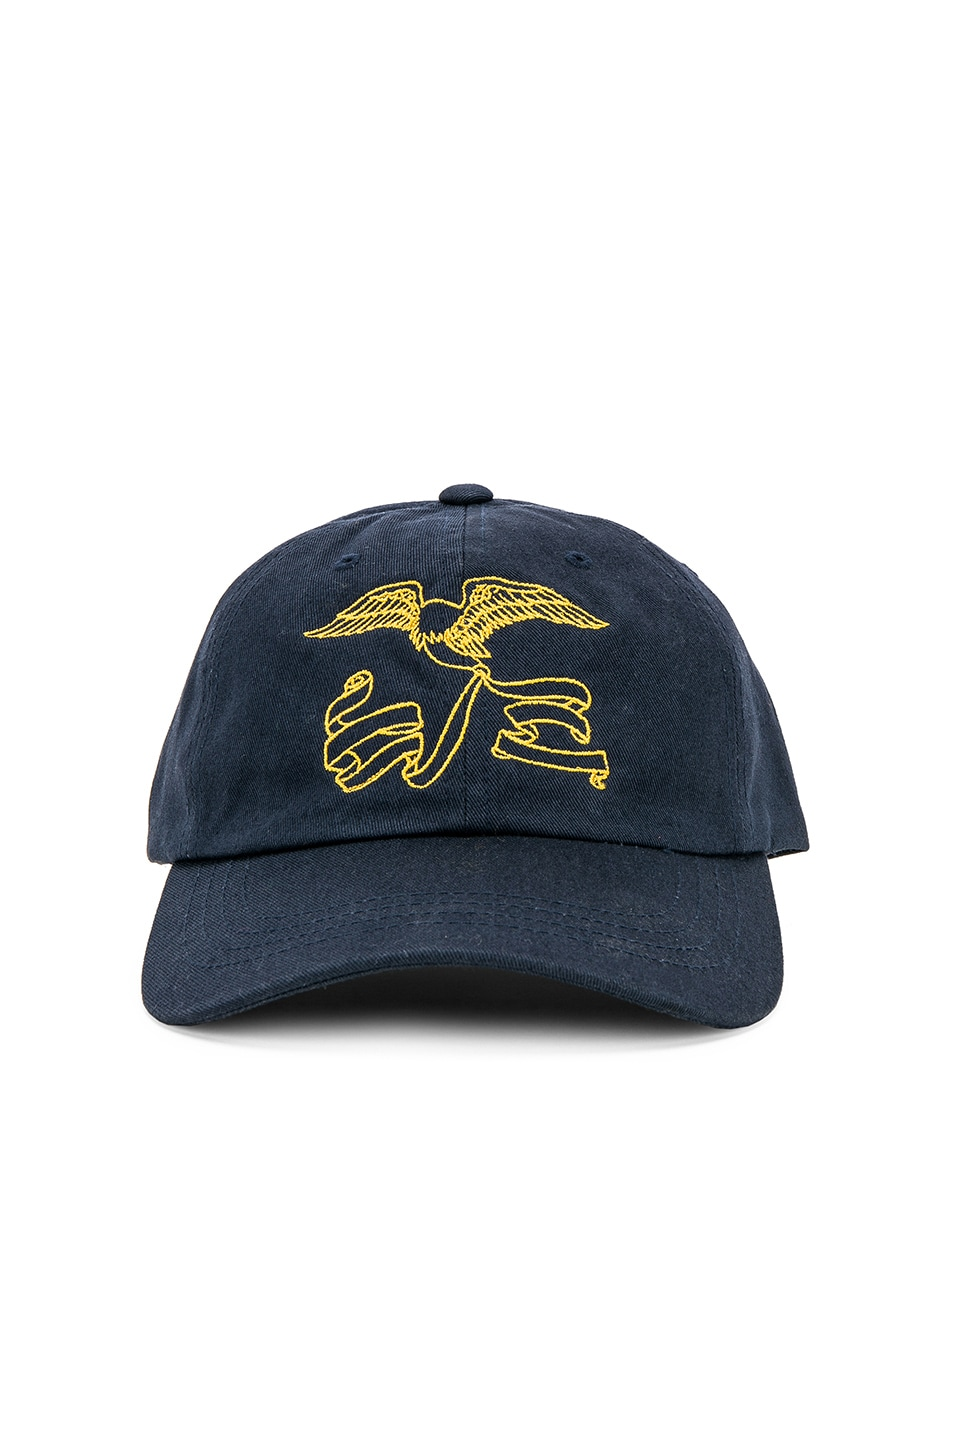 Image 1 of Reese Cooper Awoi Eagle Cap in Navy & Yellow